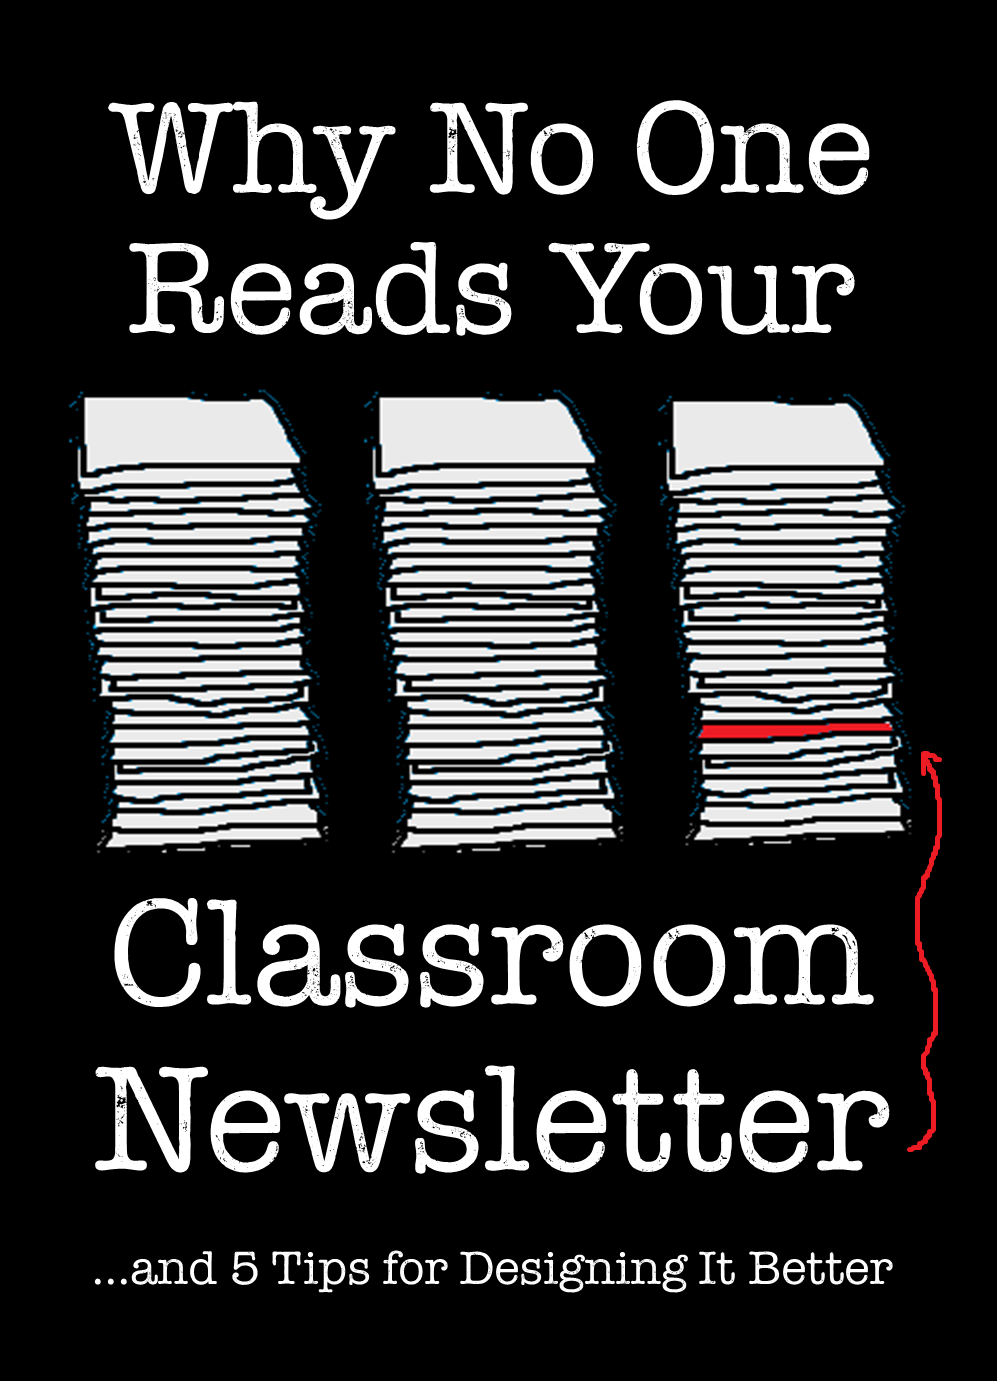 Why No One Reads Your Classroom Newsletter.